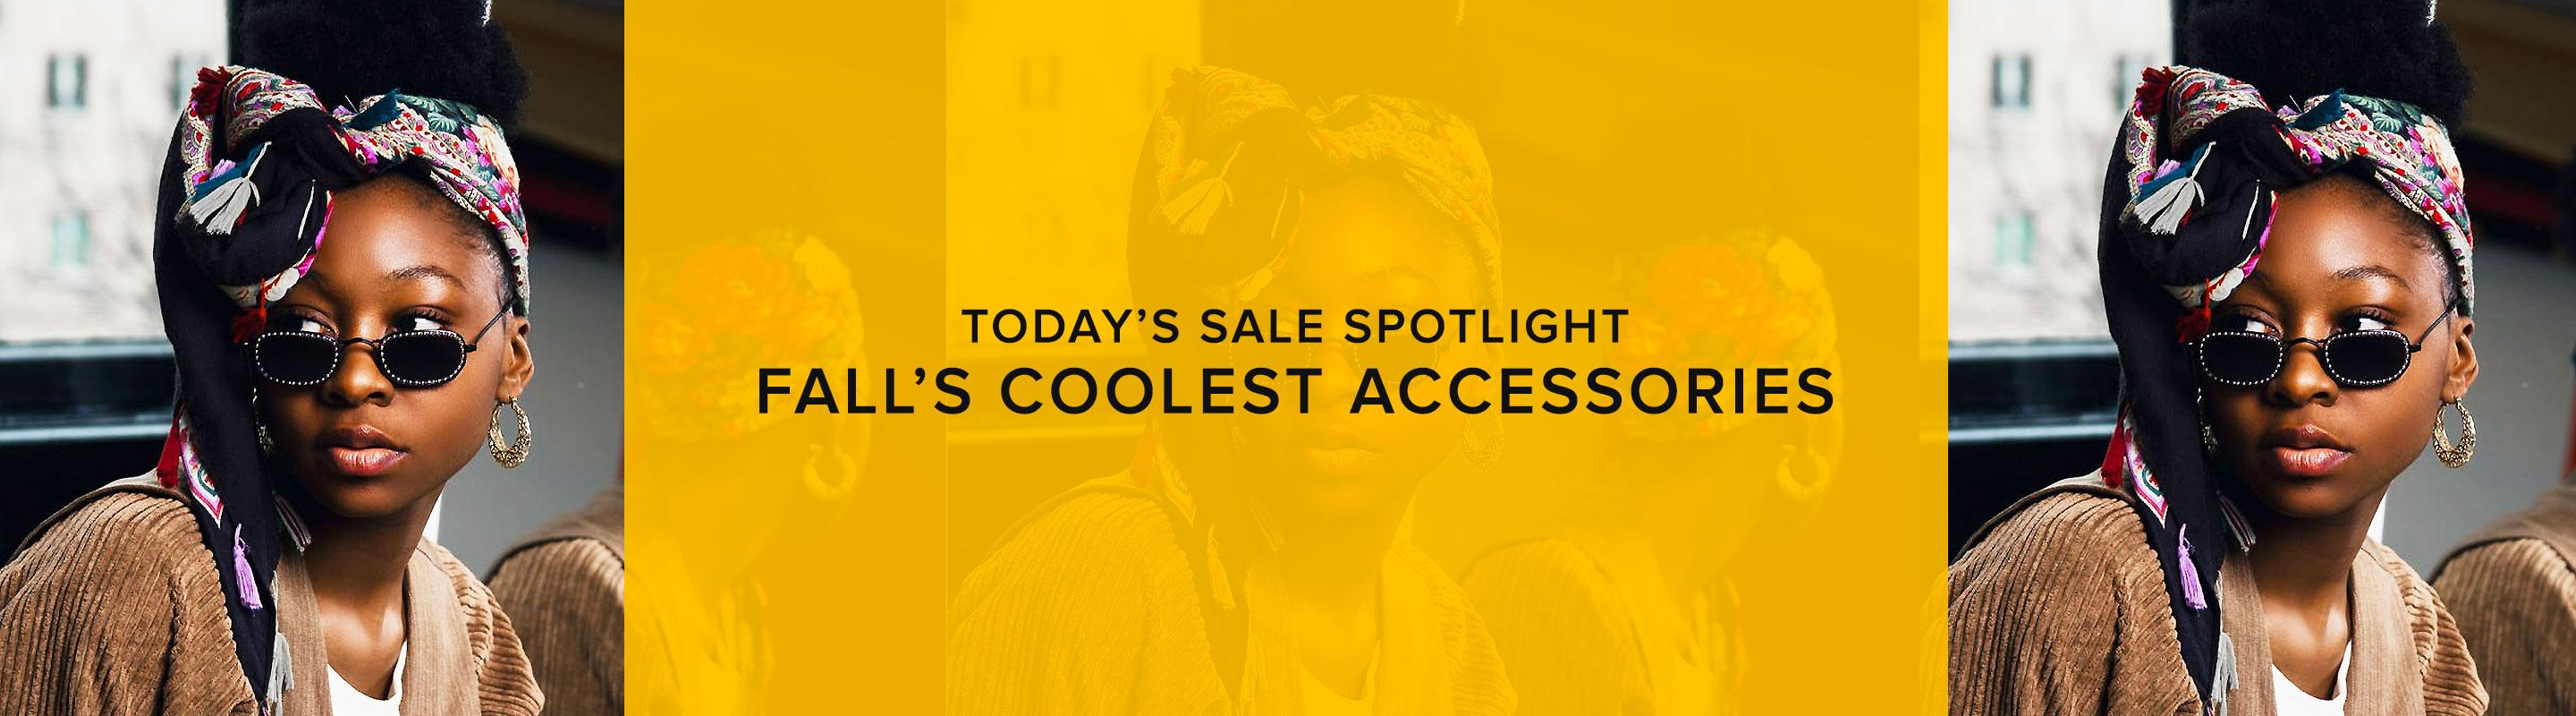 Fall's Coolest Accessories